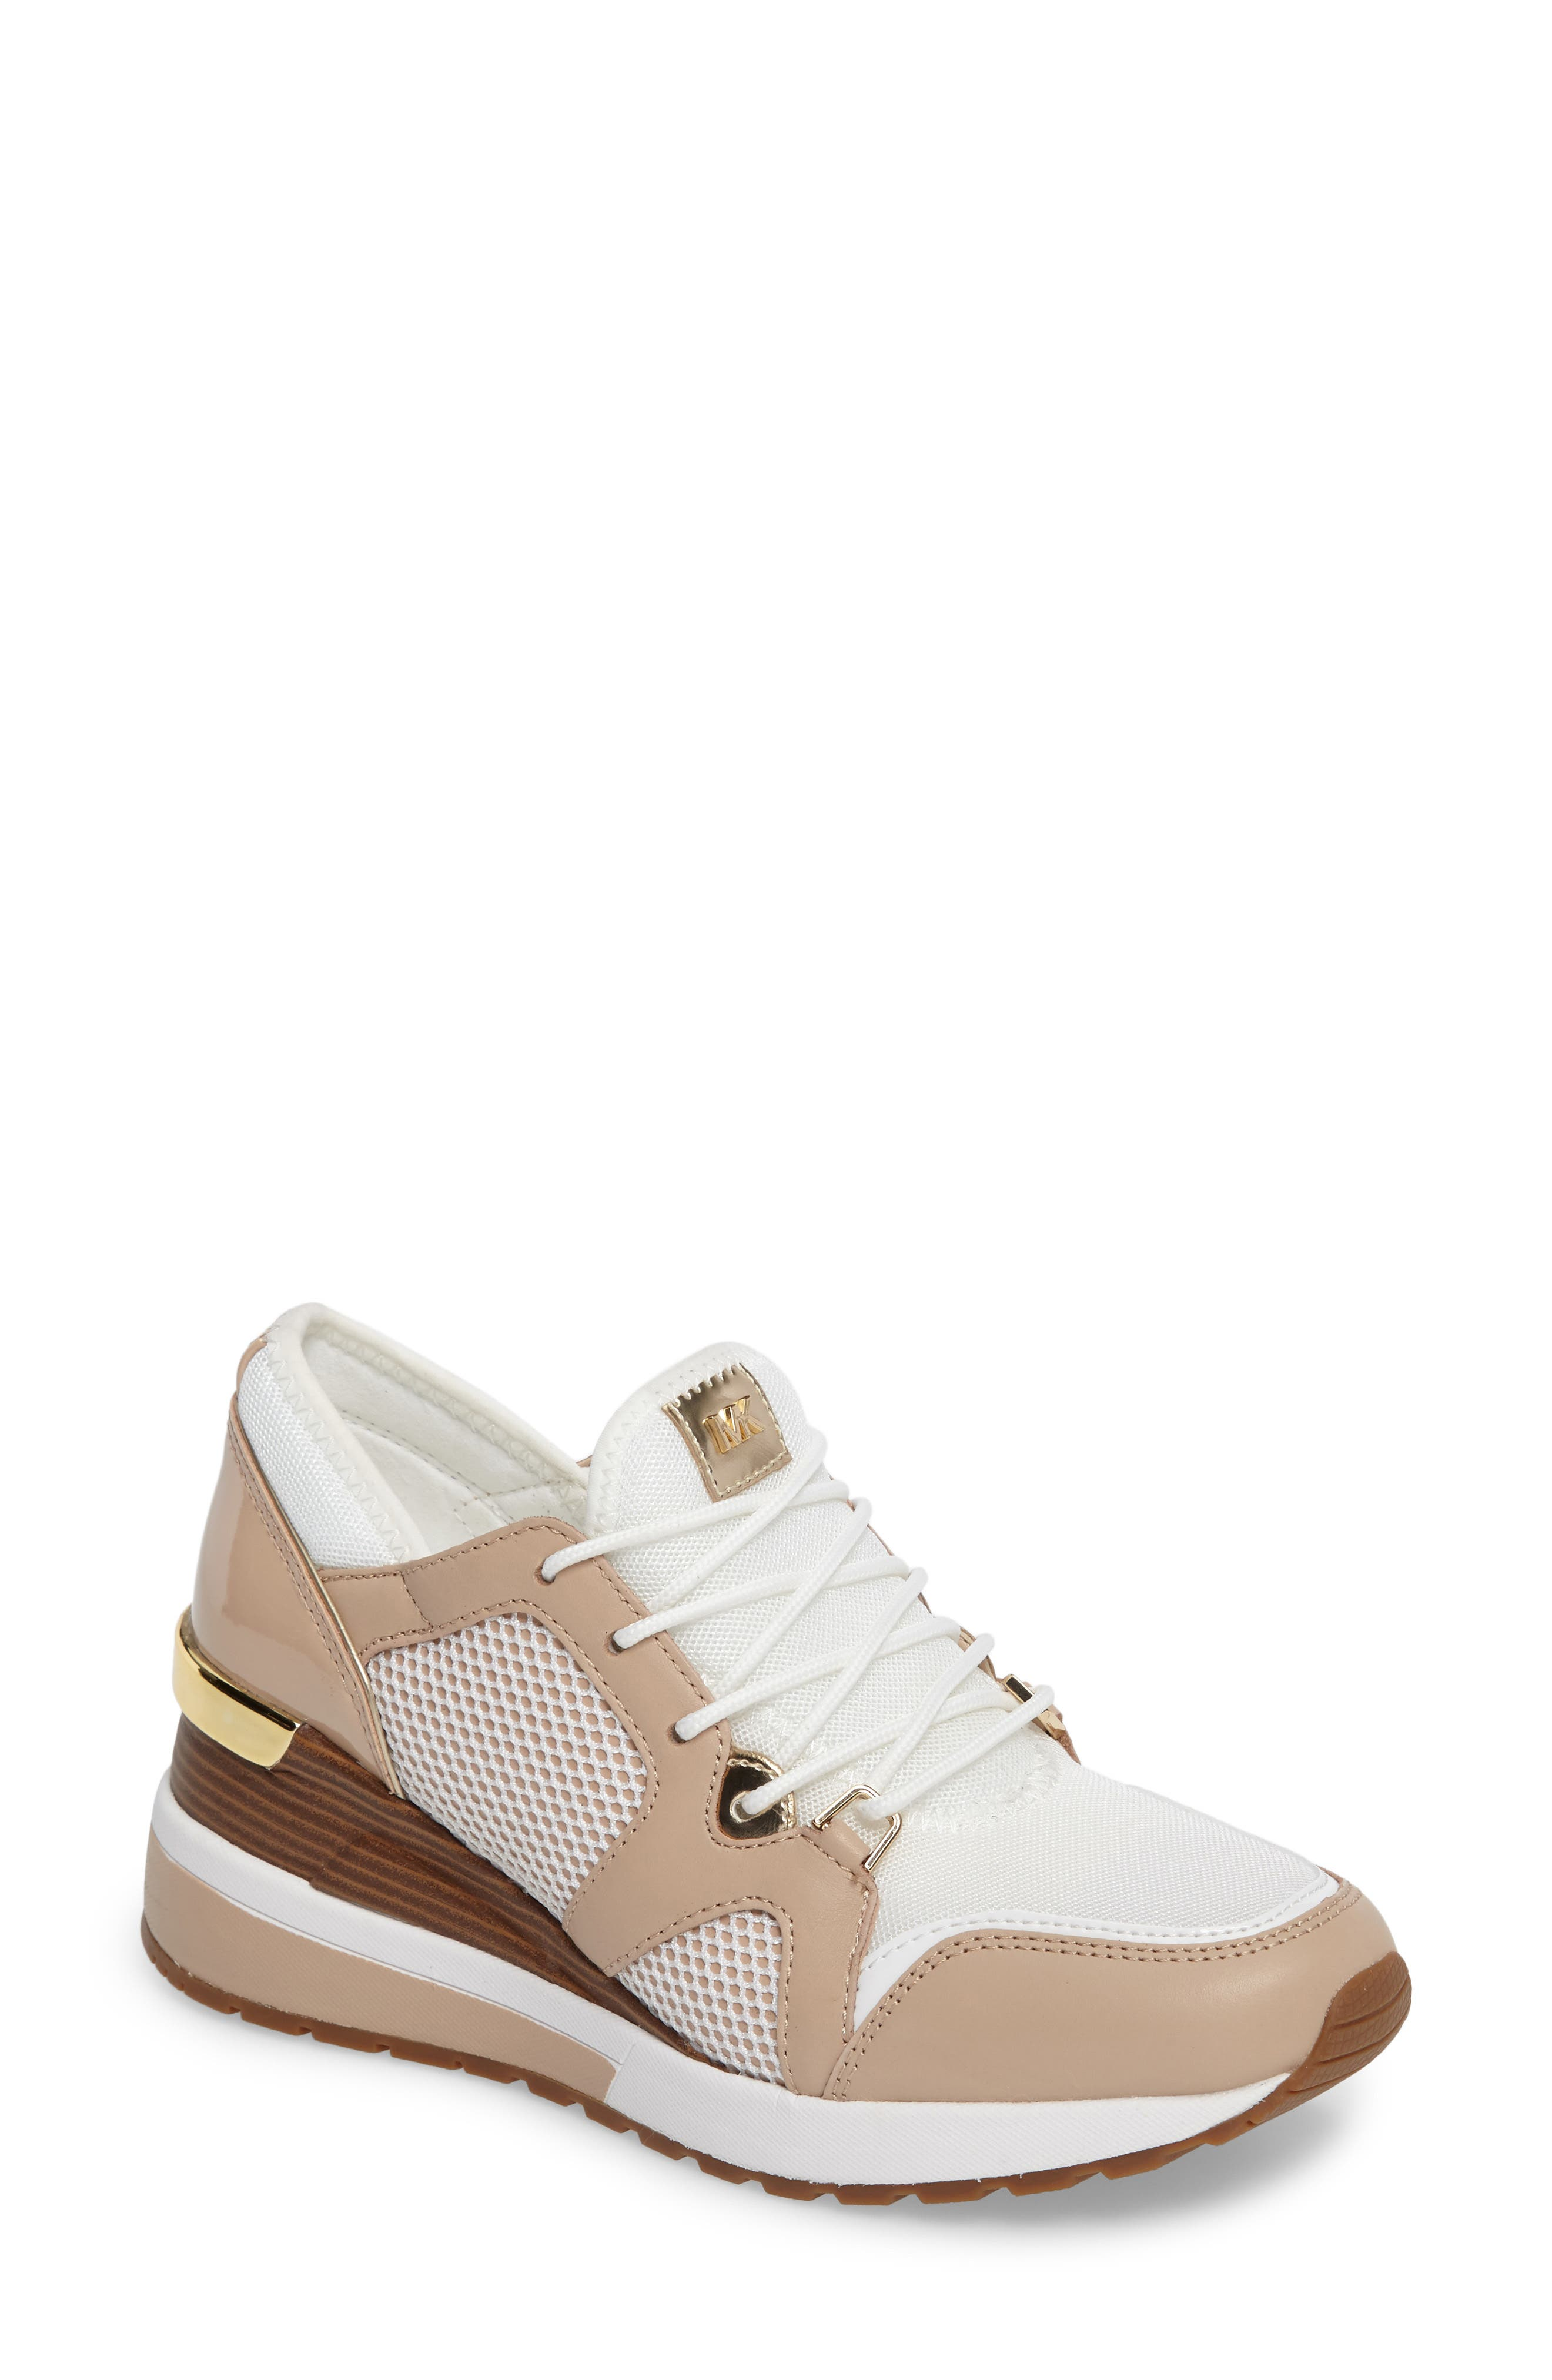 Scout Wedge Sneaker,                         Main,                         color, Optic White/ Oyster